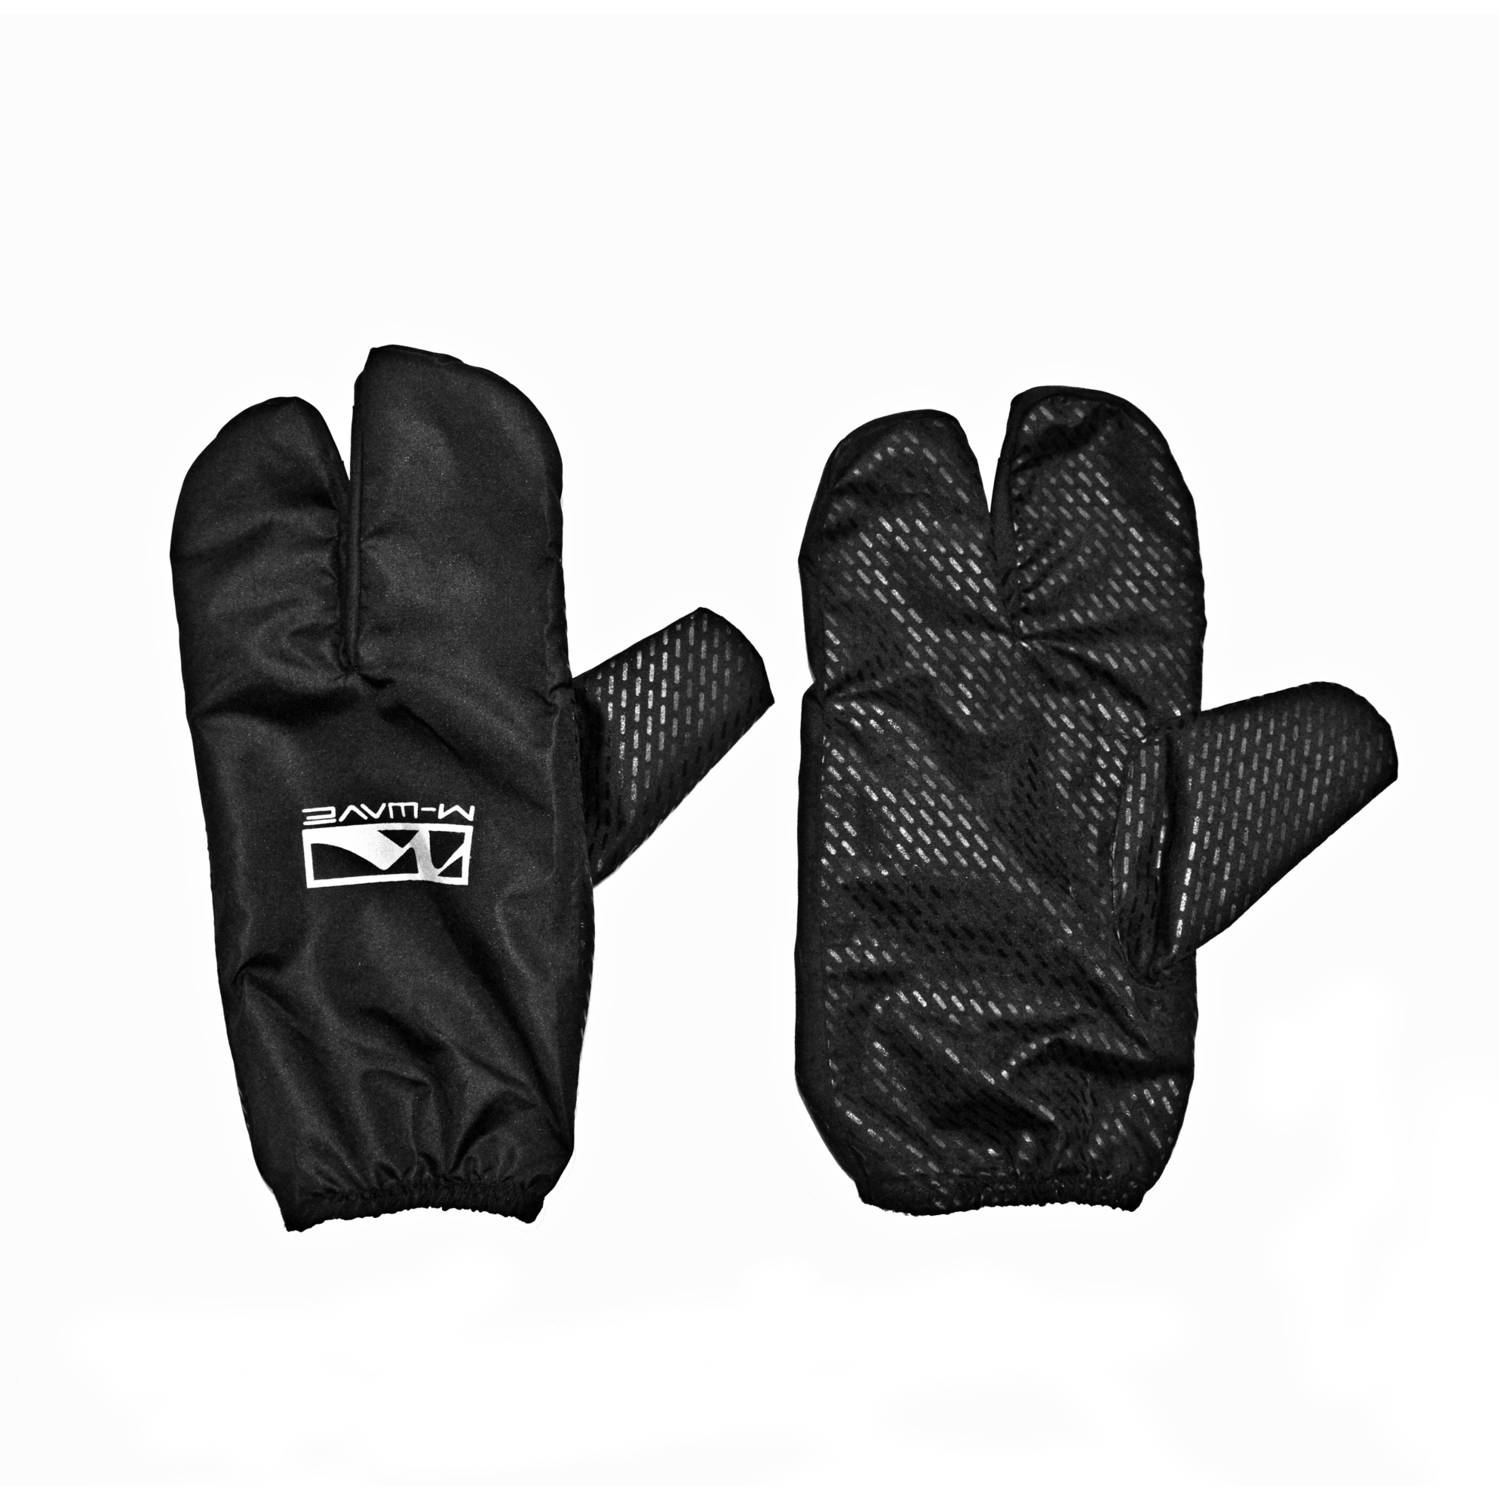 Ventura Claw Split Finger Wind and Water Repellent Glove, Small/Medium